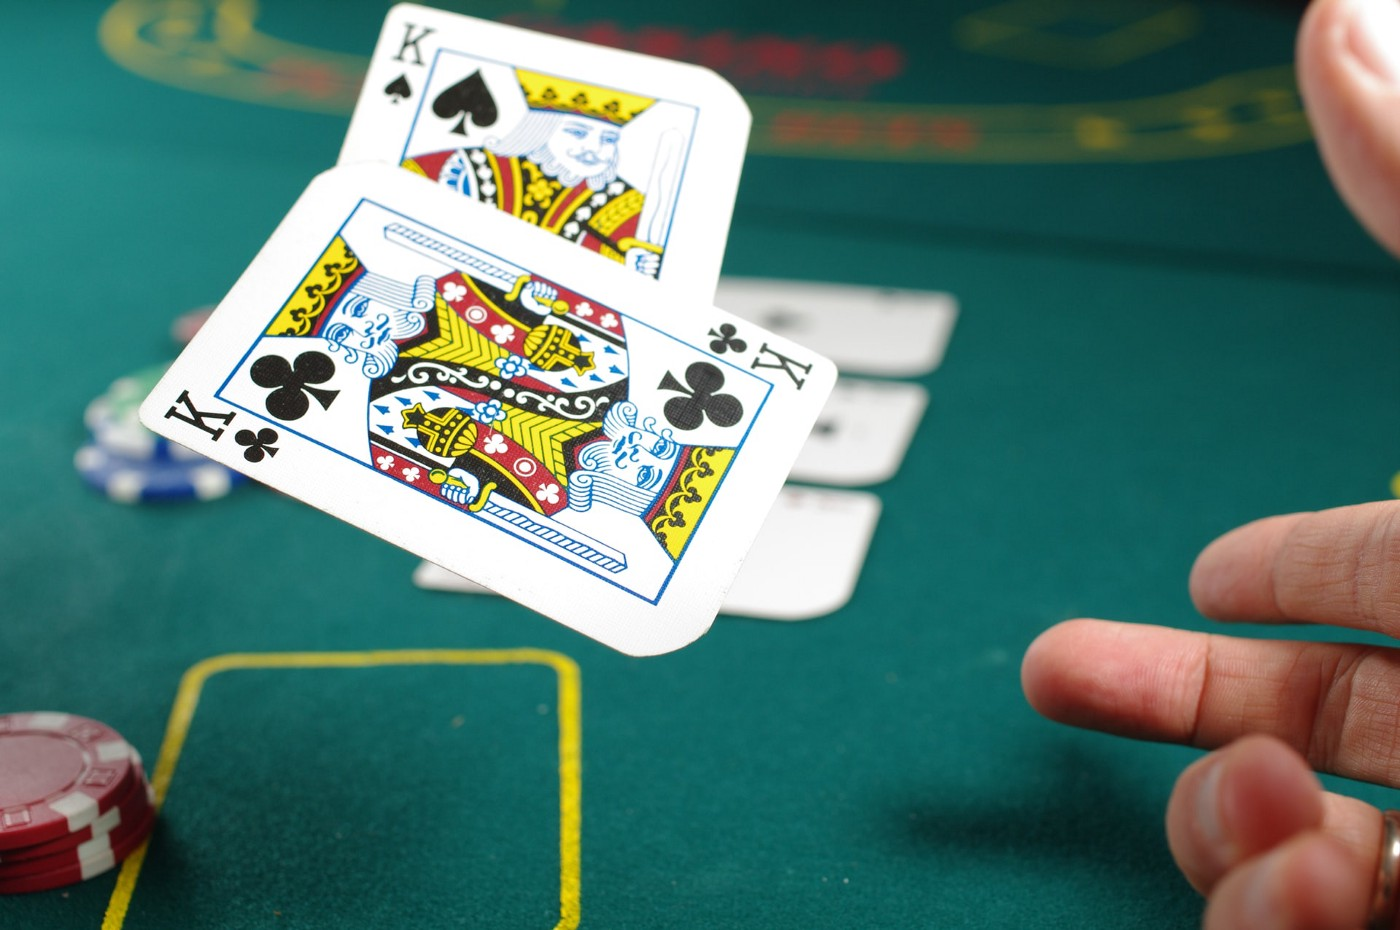 A hand throwing a pair of Kings cards on a poker table.